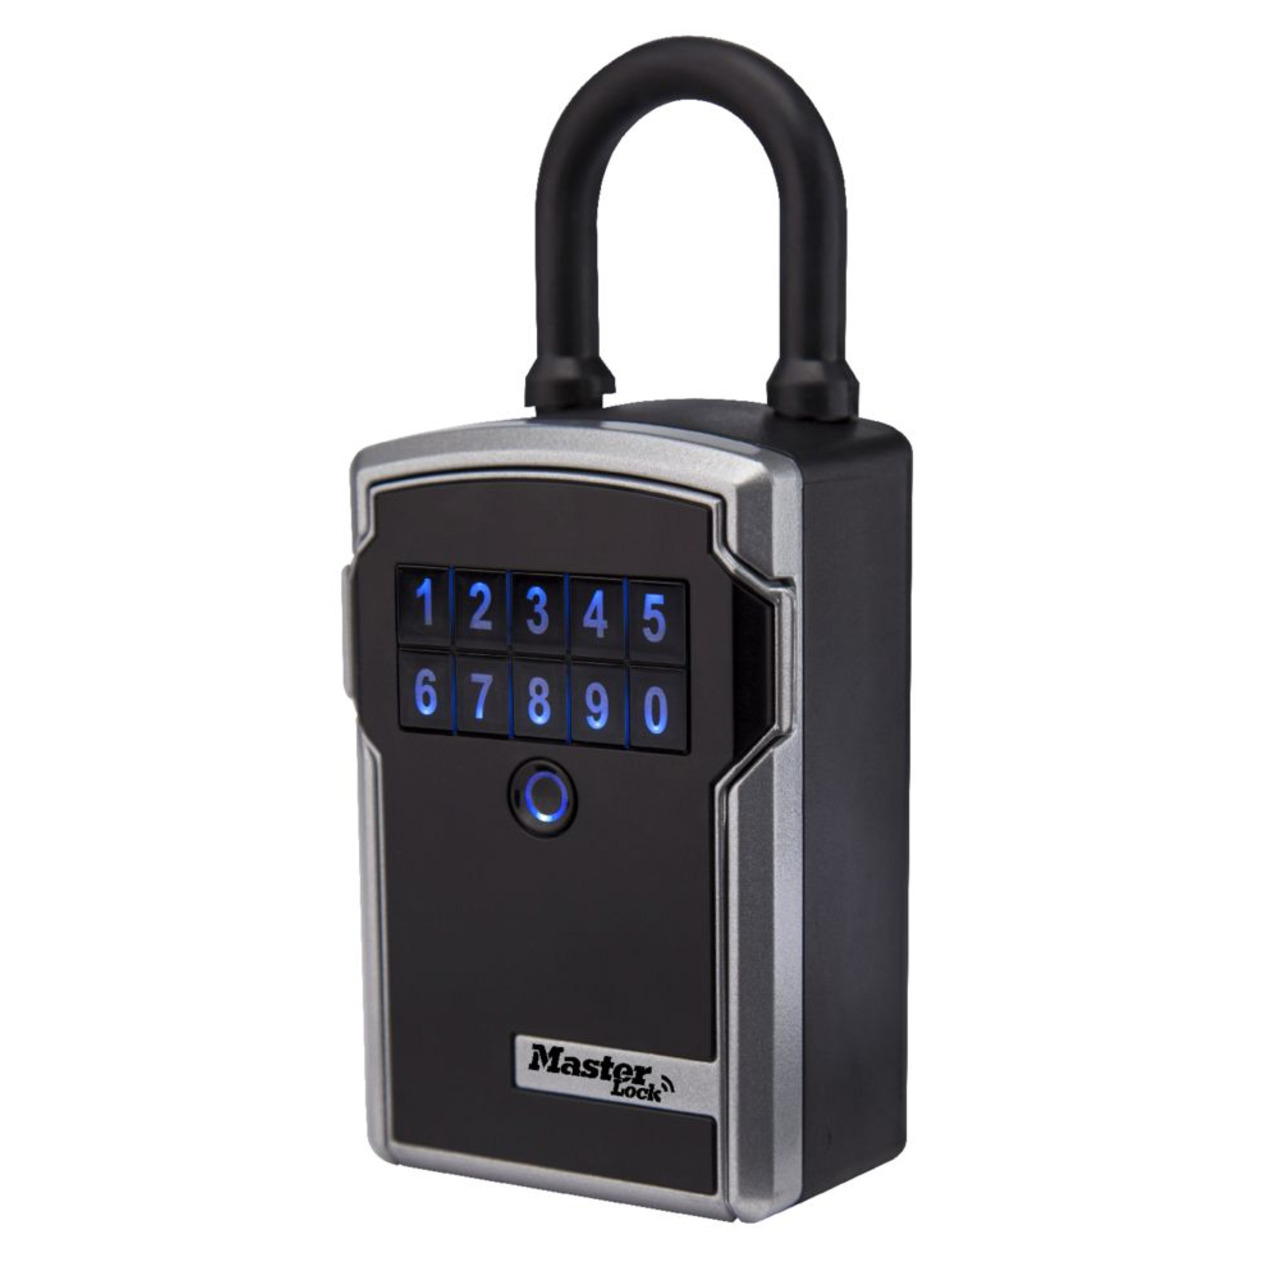 Master Lock Bluetooth-Schlüsselsafe mit Bügel 5440EURD Select Access SMART- Zugriff per Smartphone